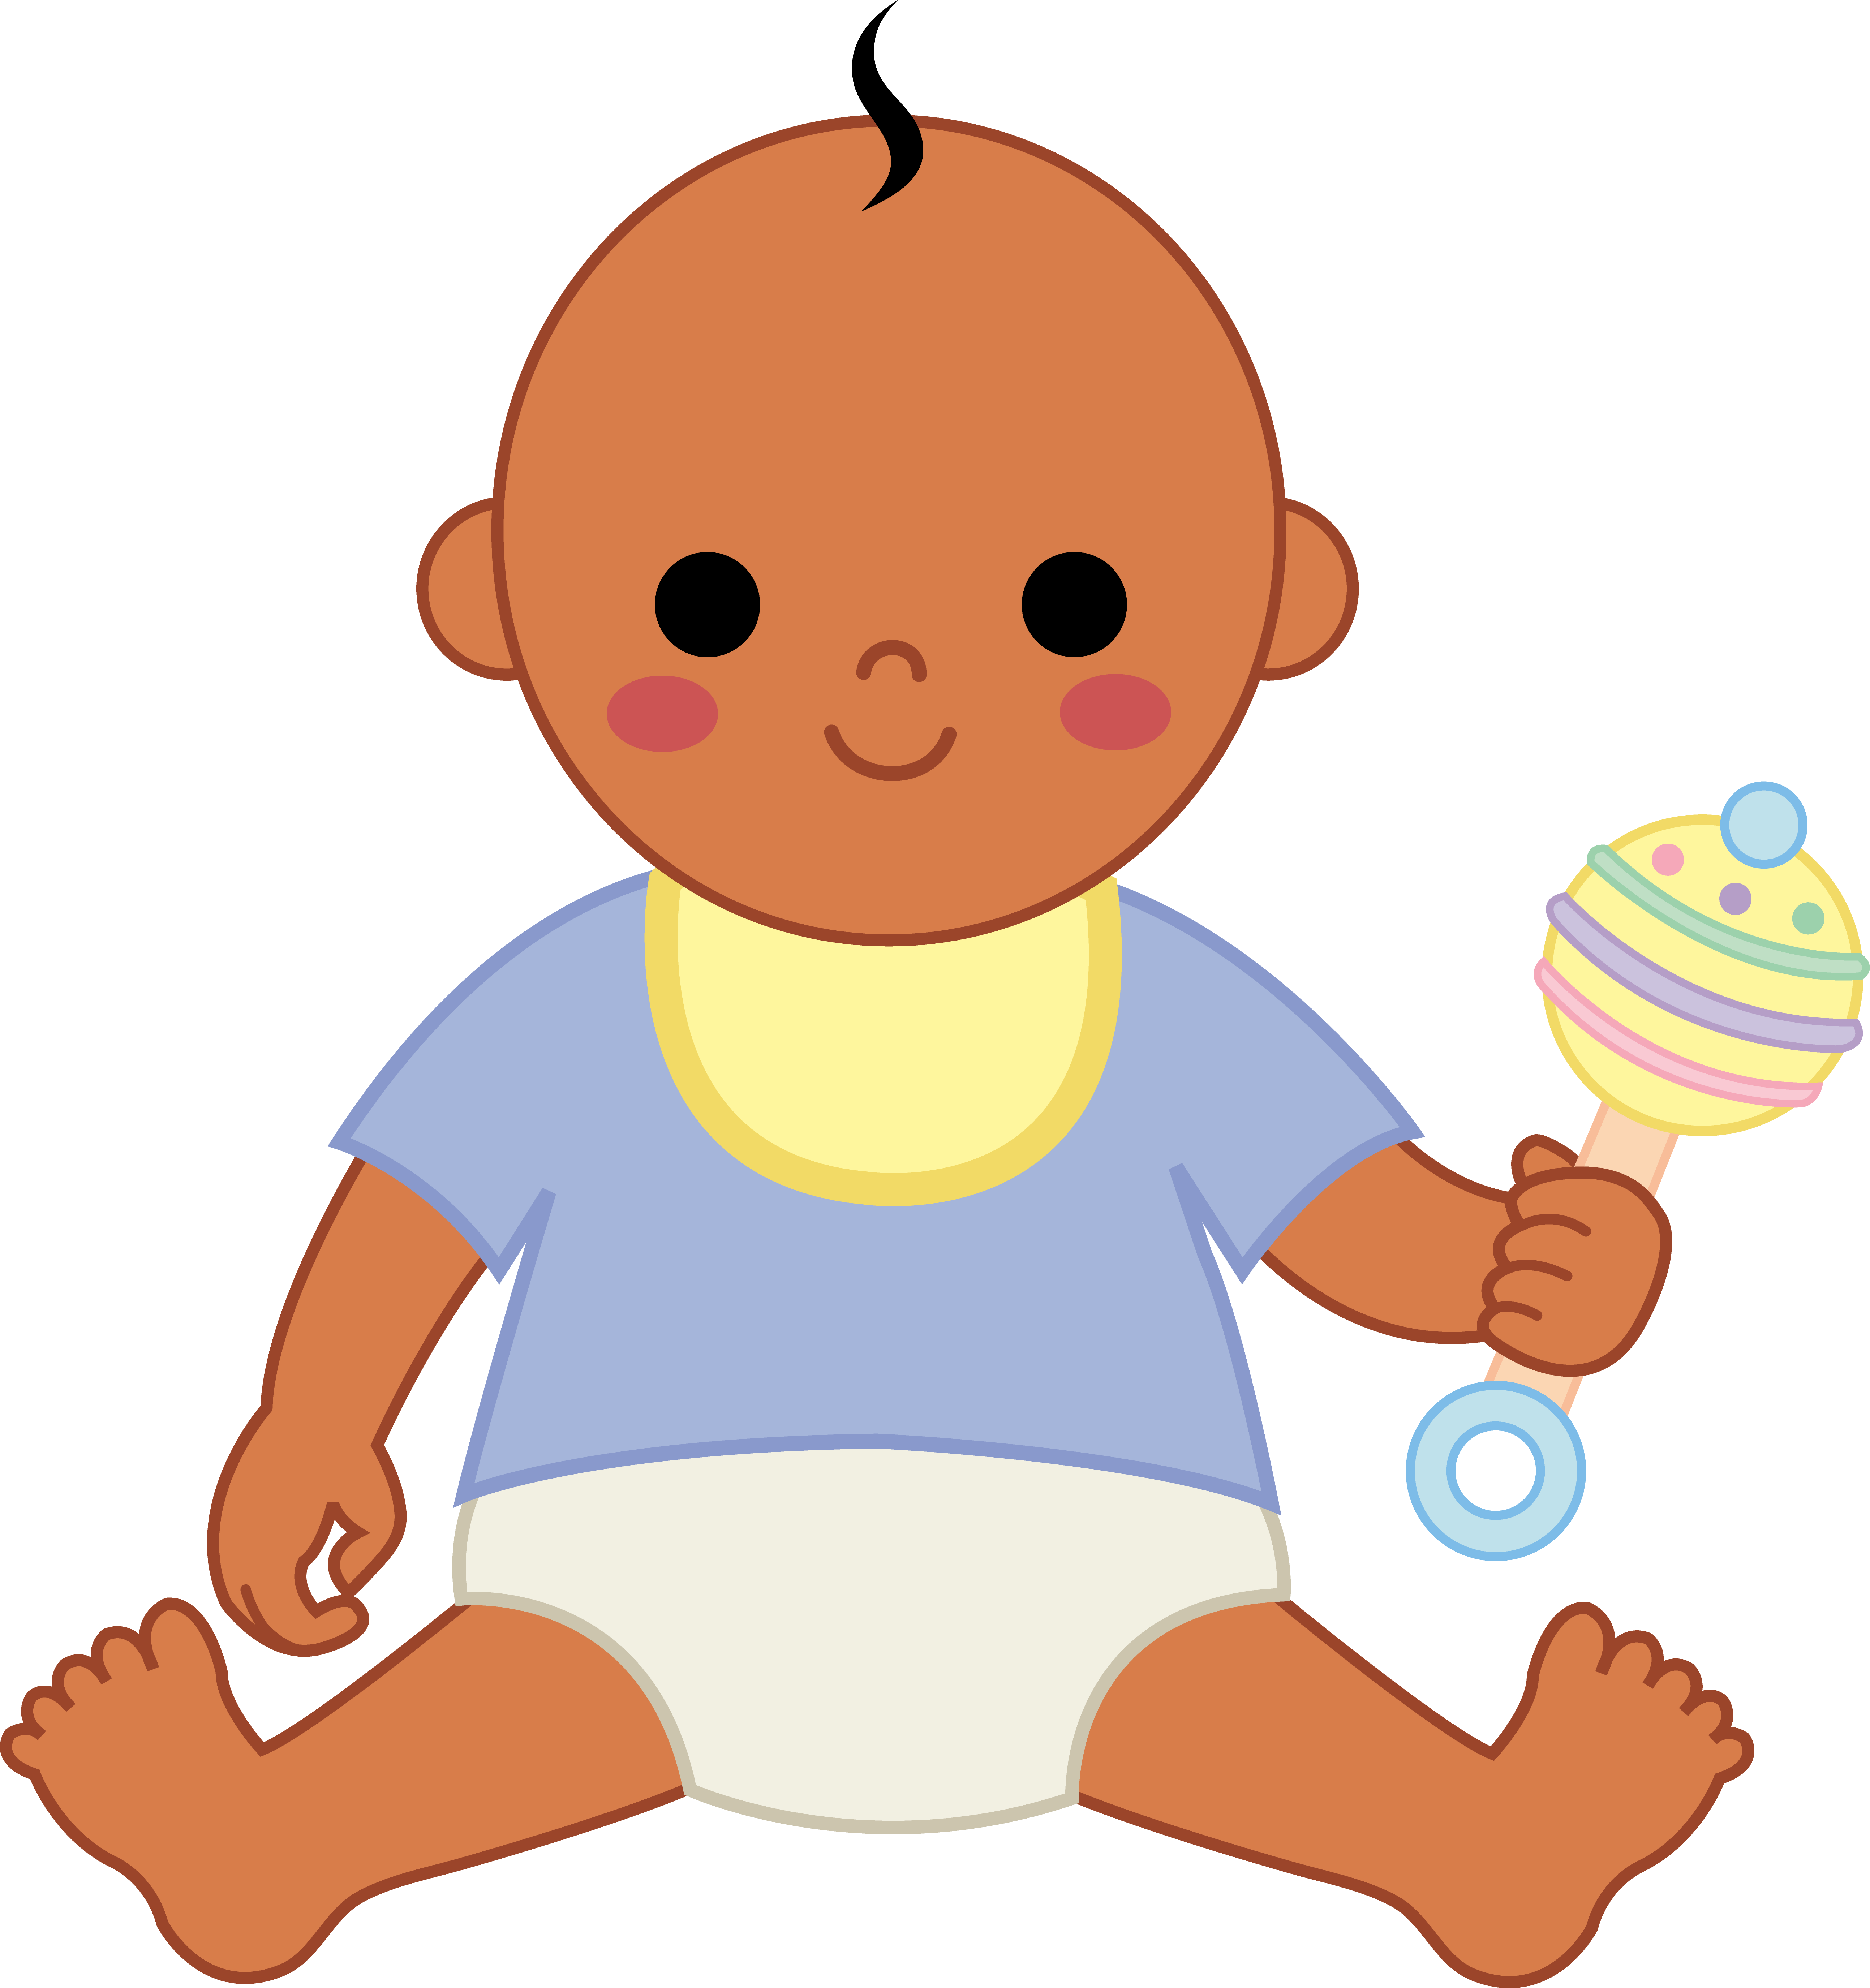 Clipart Baby-clipart baby-13